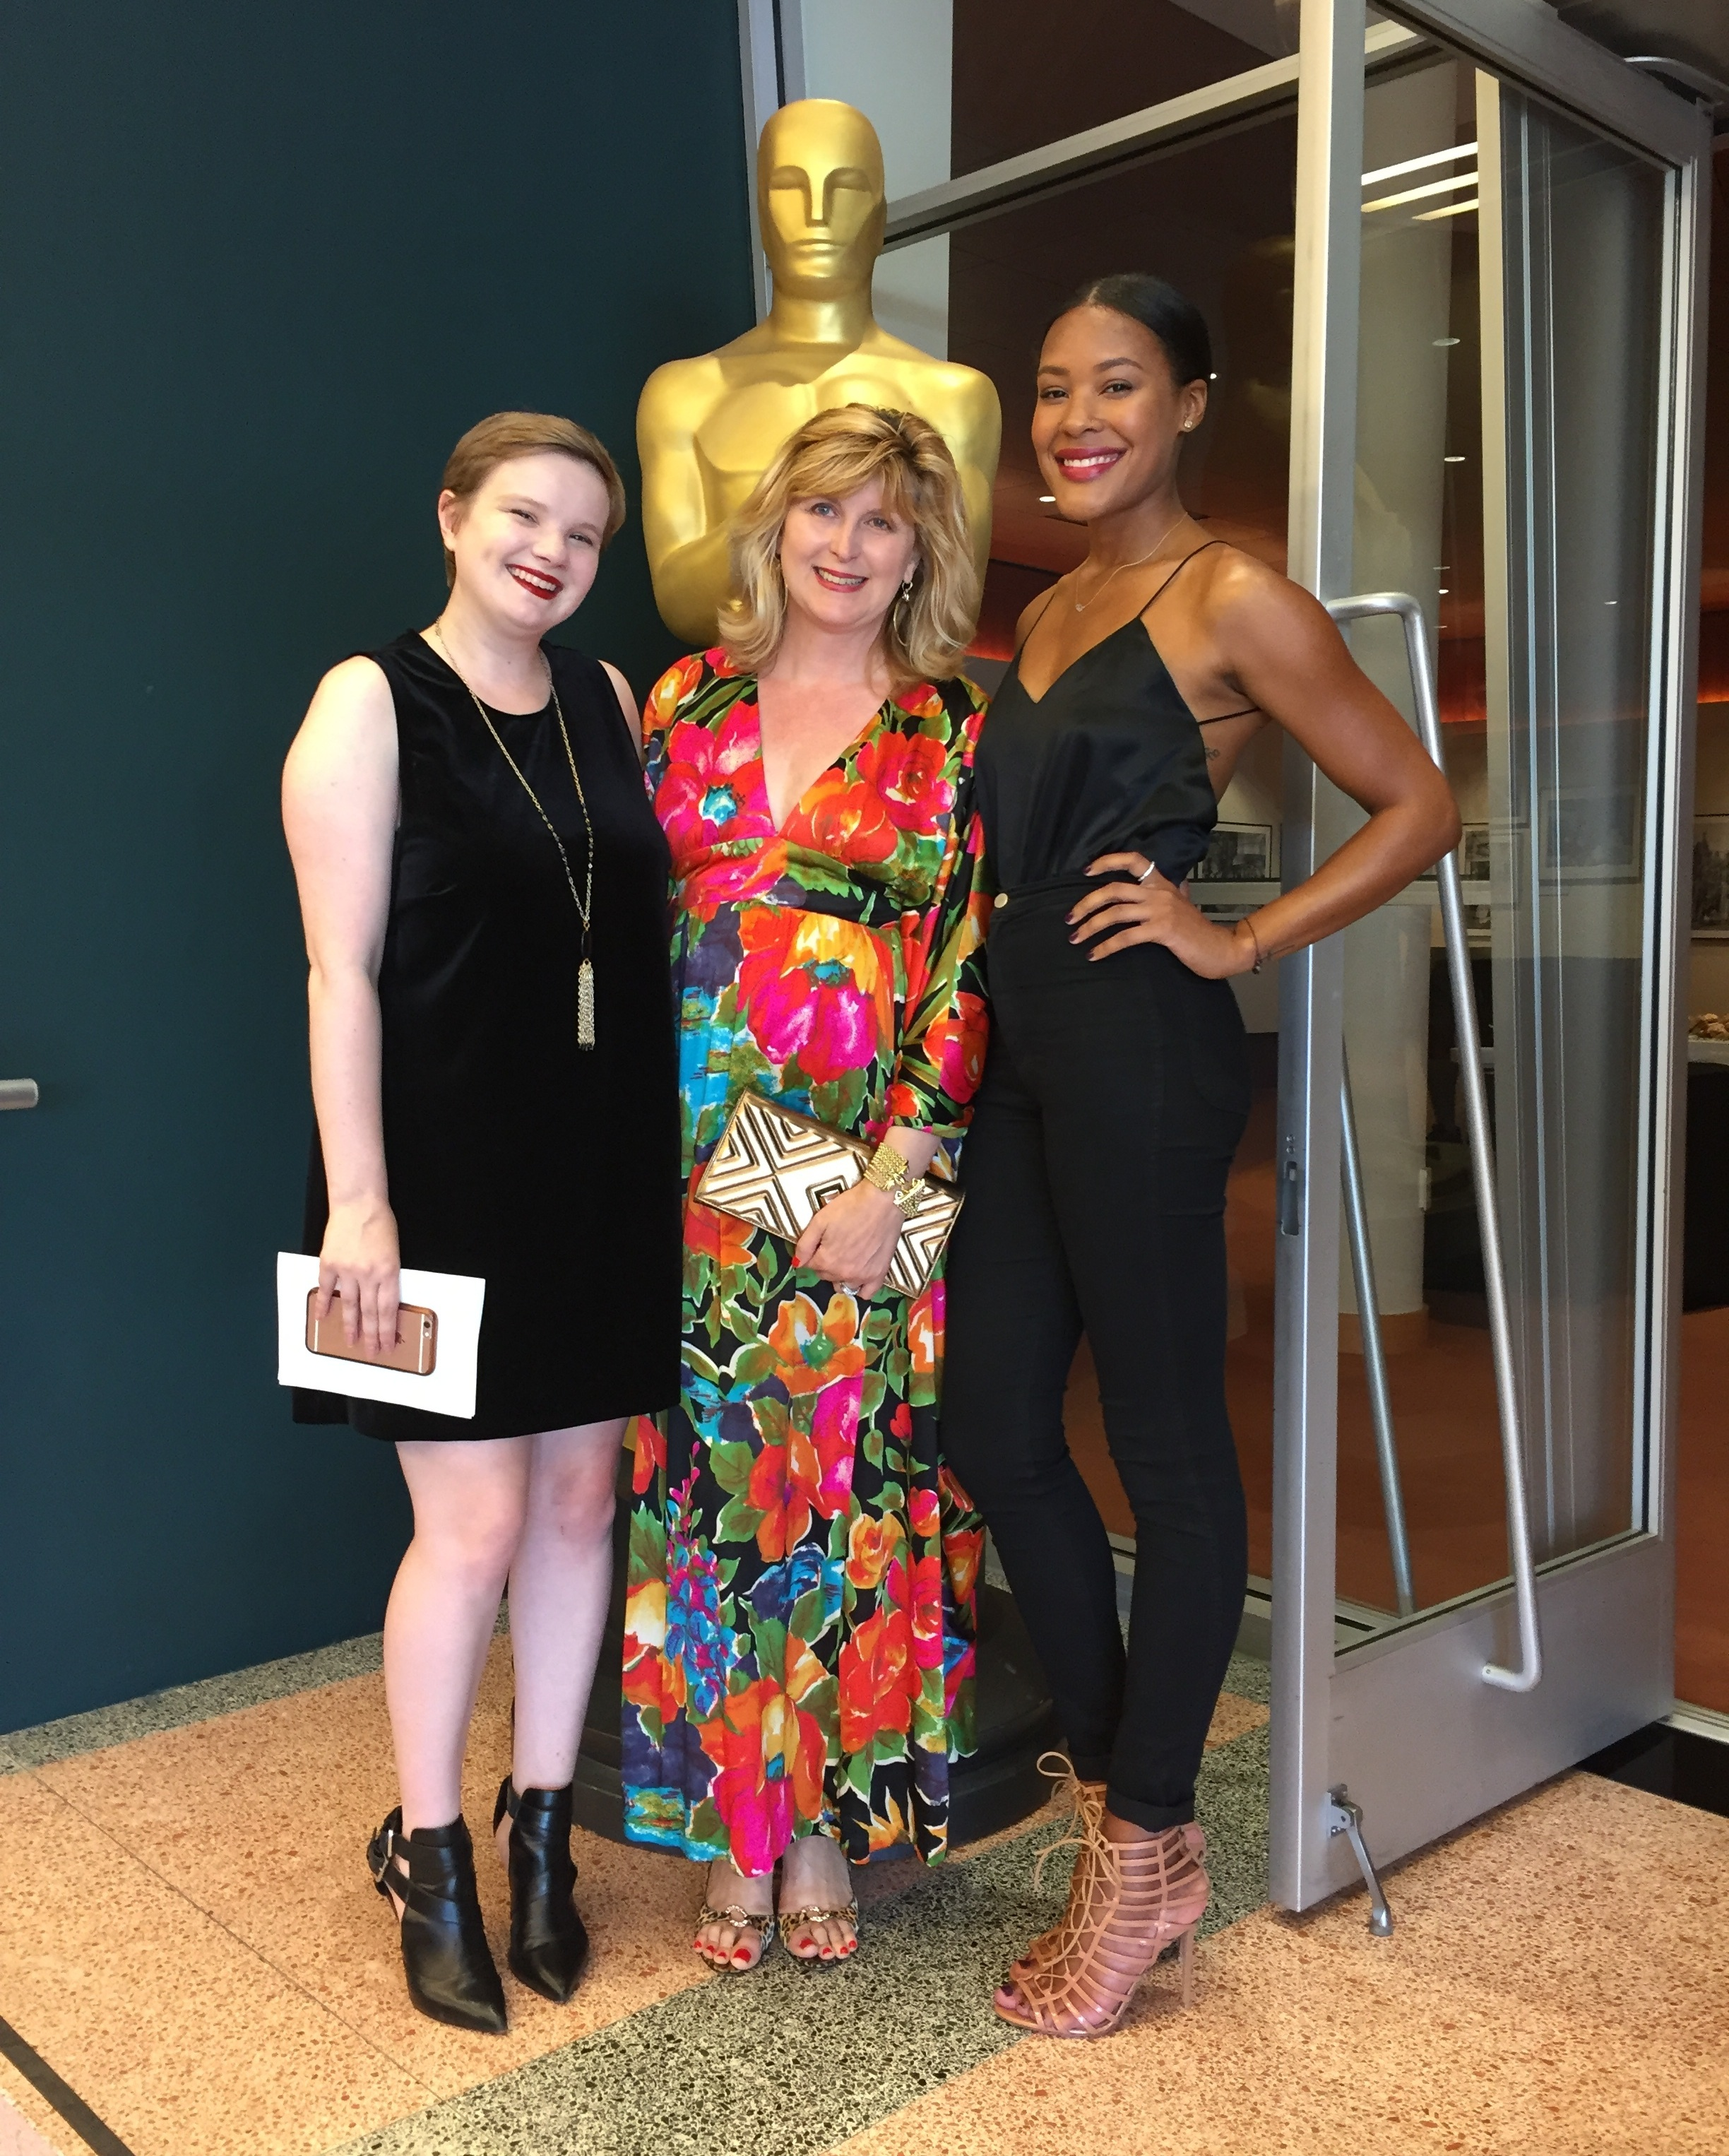 Doreen Creede/Style Maniac (center) with Pretty Thing Studios founders Sarah Hawkins (left) & Myah Hollis (right) at The Academy of Motion Picture Arts & Sciences for the premiere of OR DIE TRYING.